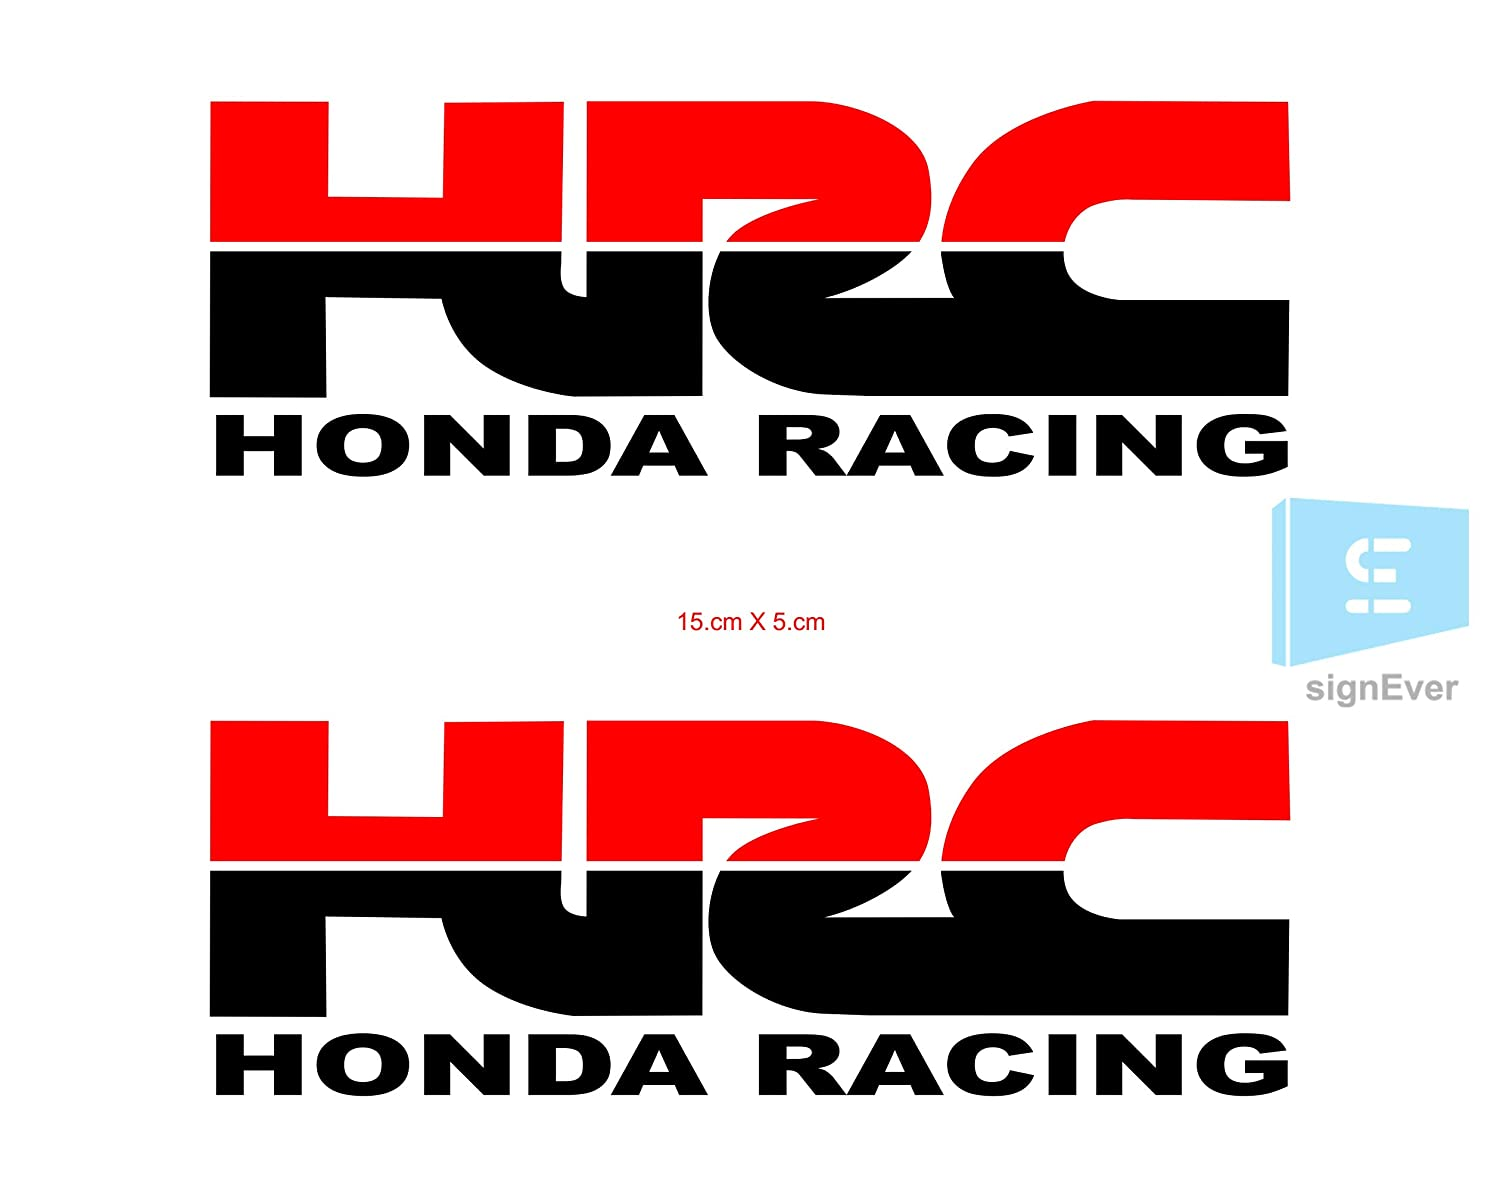 Sign ever honda dio stickers for bike scooty exterior hrc honda racing multicoloured decals l x h 15 x 5 cms pack of 2 amazon in car motorbike